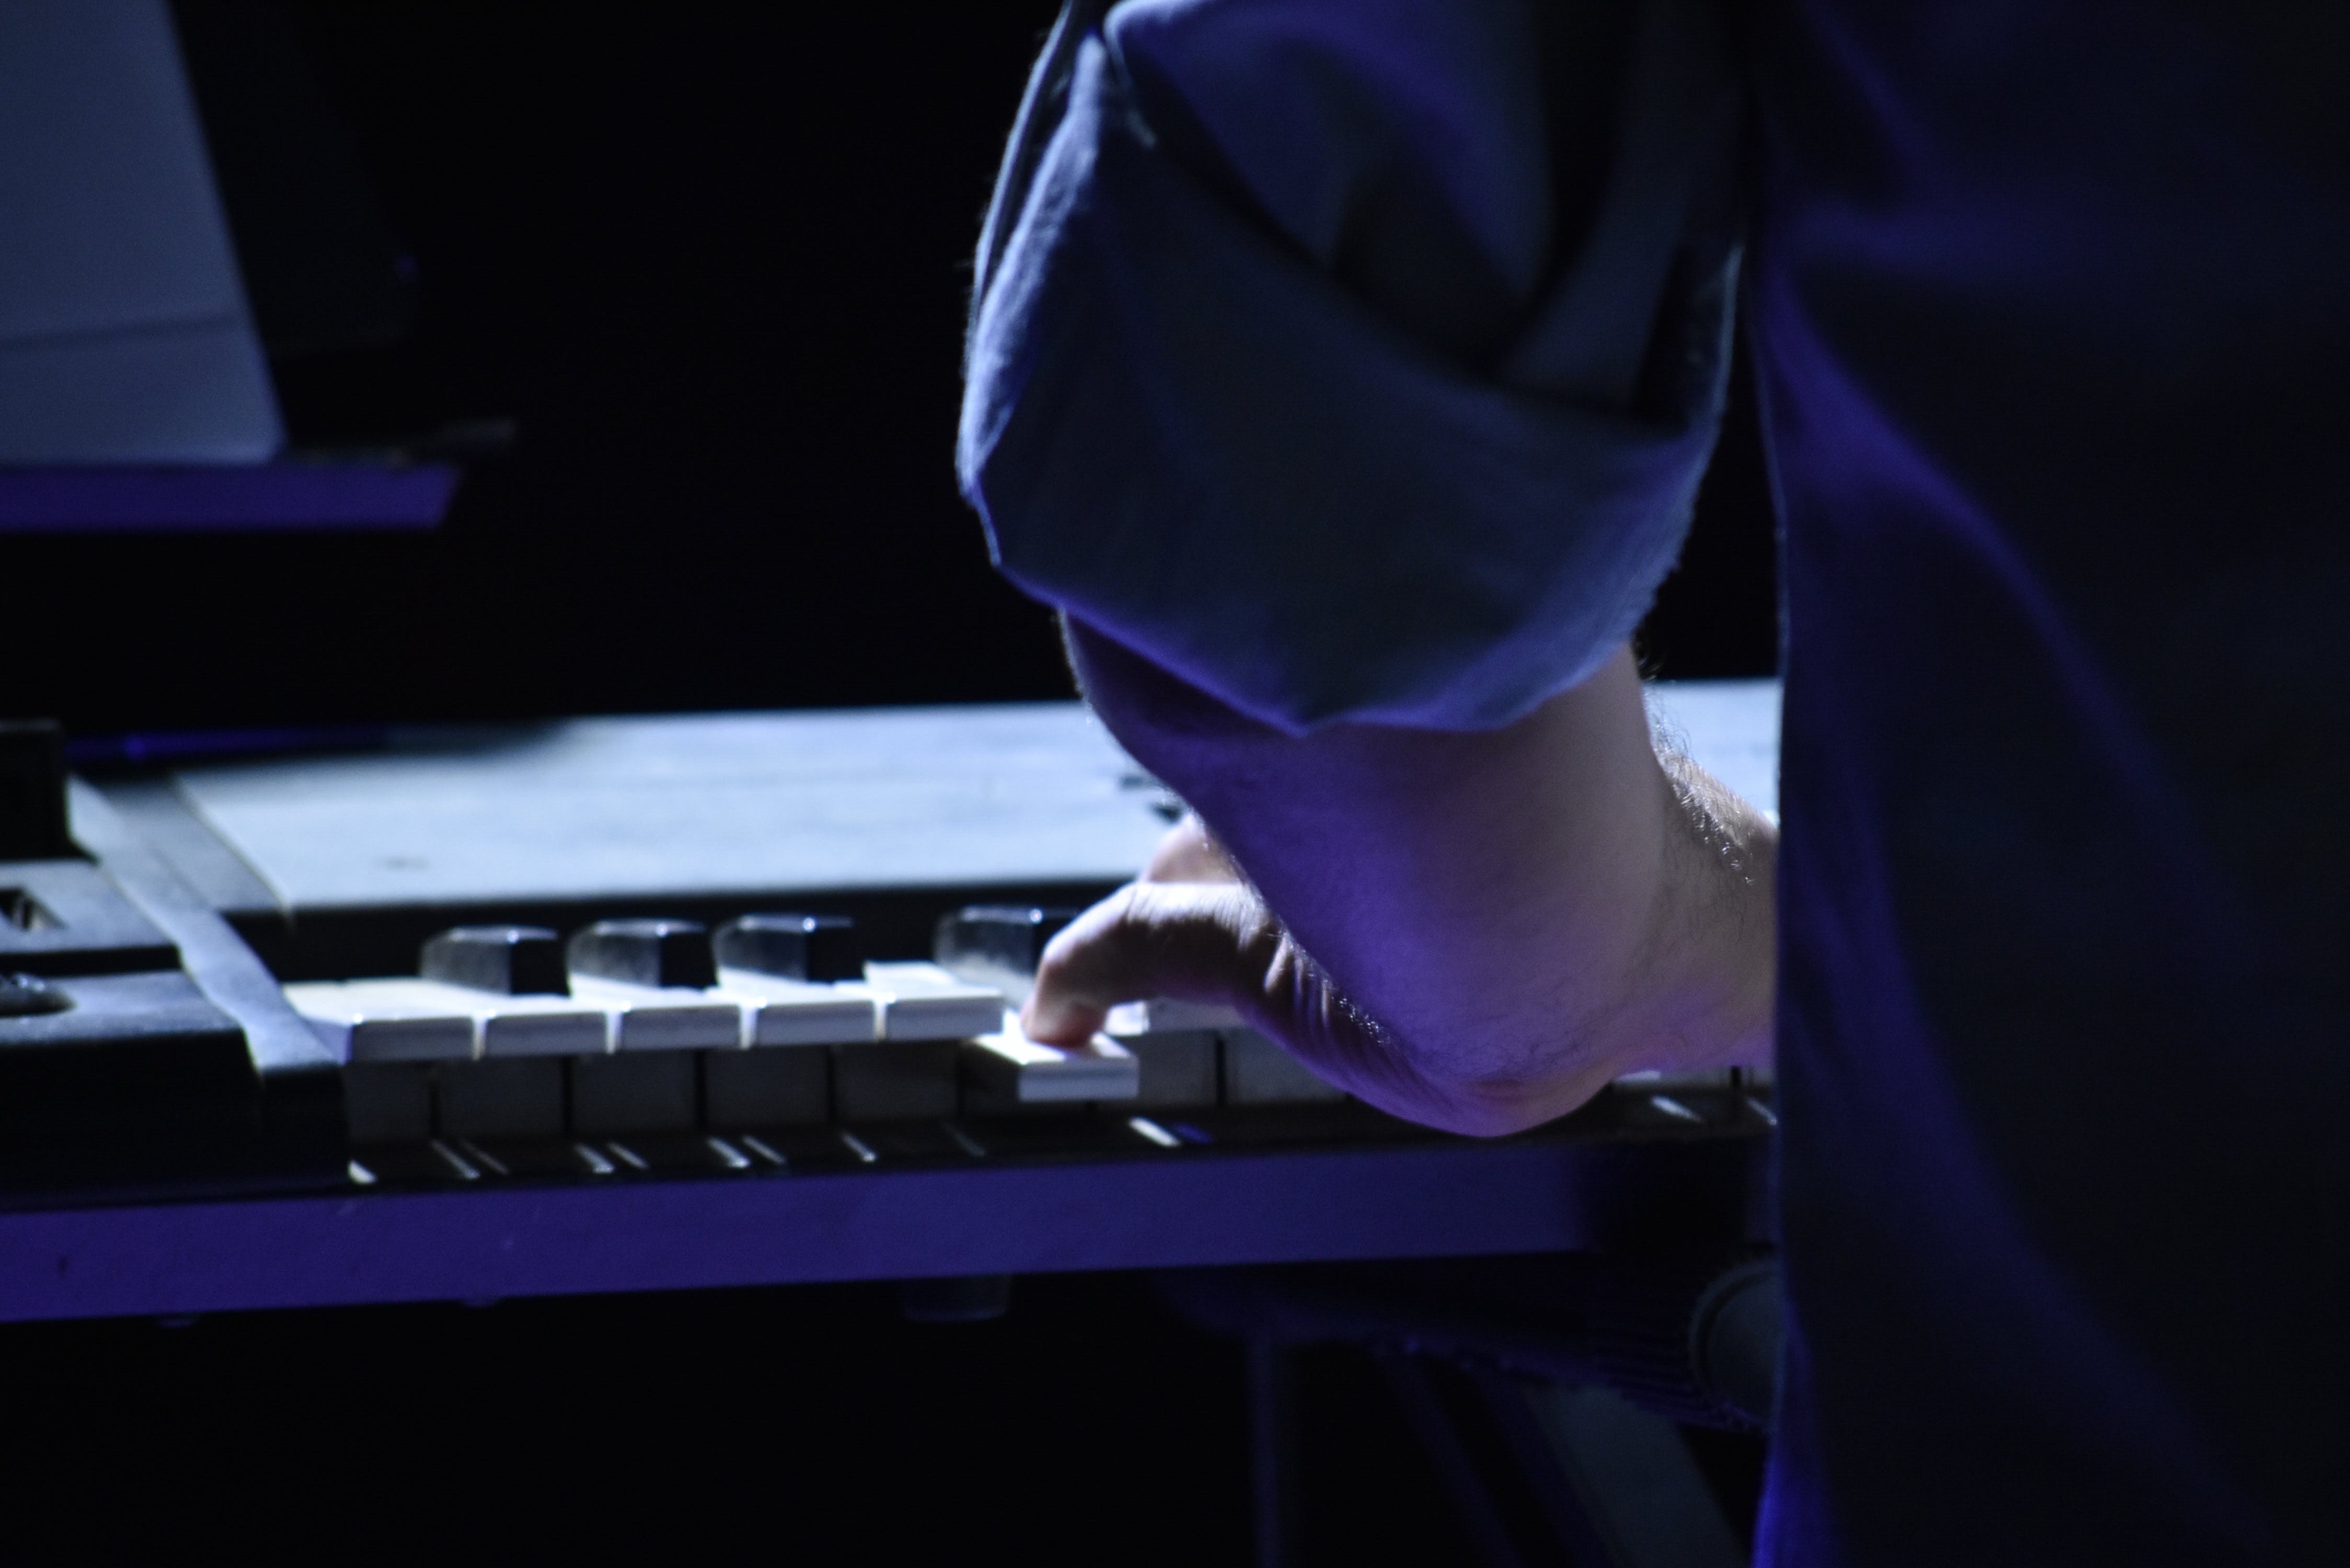 classical music, live music, piano player